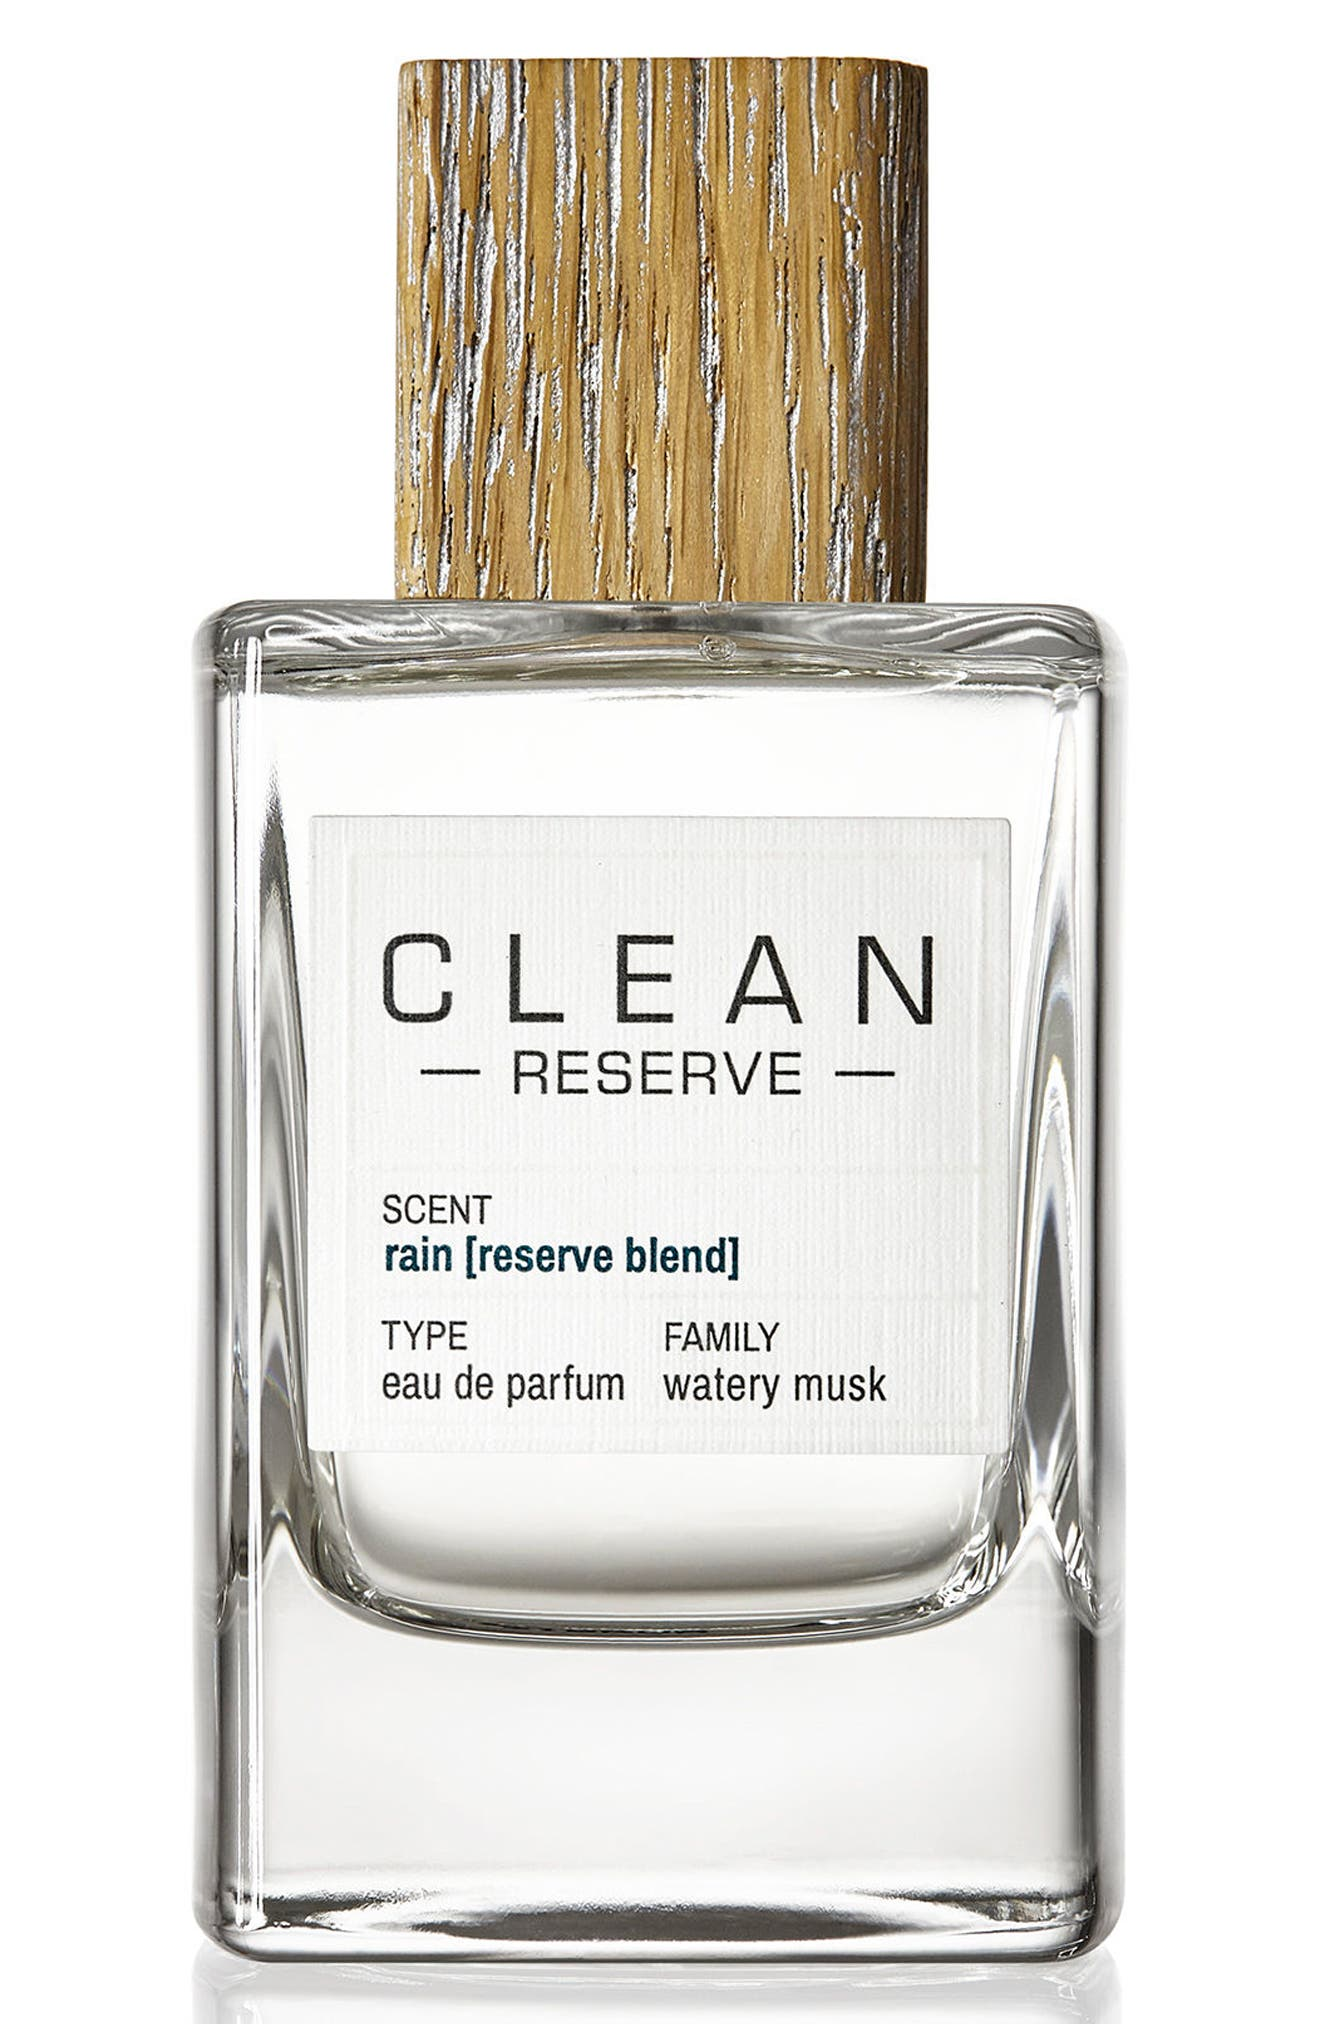 Alternate Image 1 Selected - Clean Reserve Reserve Blend Rain Eau de Parfum